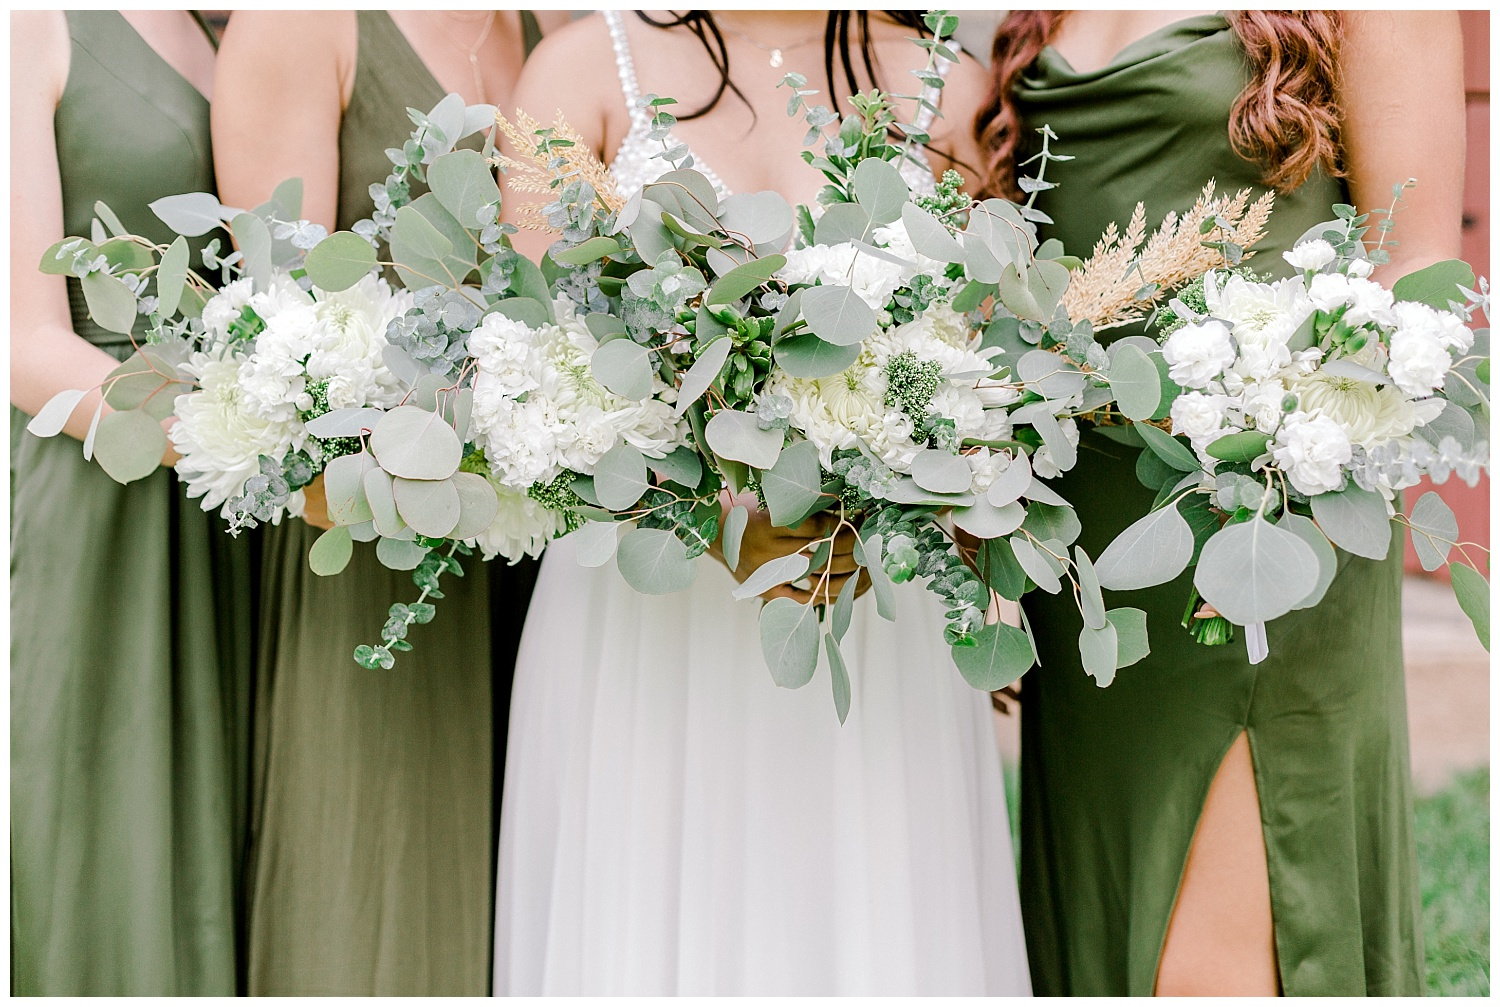 Olive green and white rustic barn wedding at burnside plantation in bethlehem pennsylvania by PA based destination wedding and lifestyle photographer Lytle photography (30).jpg